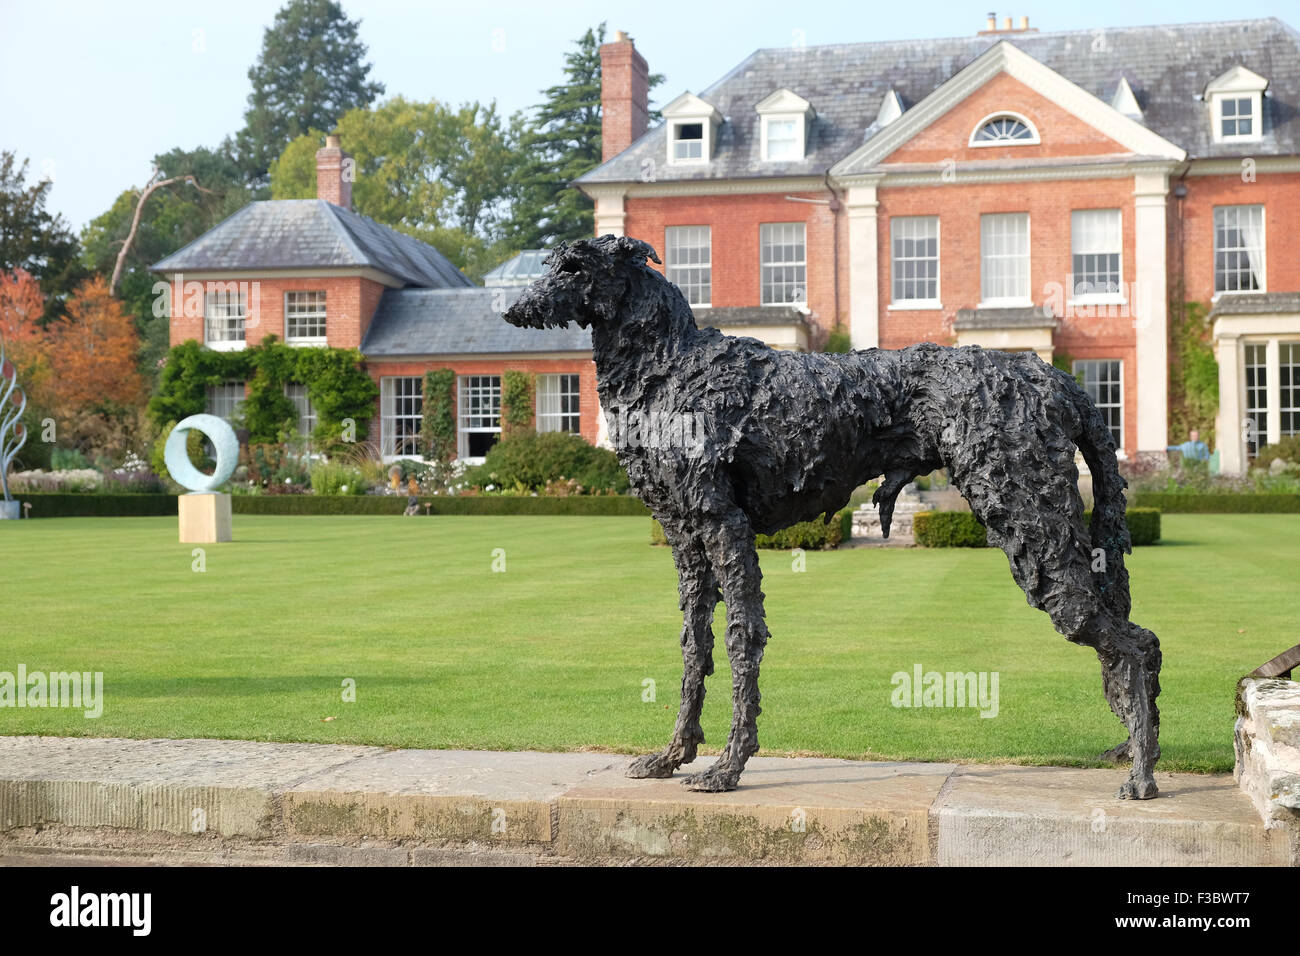 Newport House, Almeley, Herefordshire UK - Sunday 4th October 2015 - Opening day for the Out of Nature sculpture - Stock Image